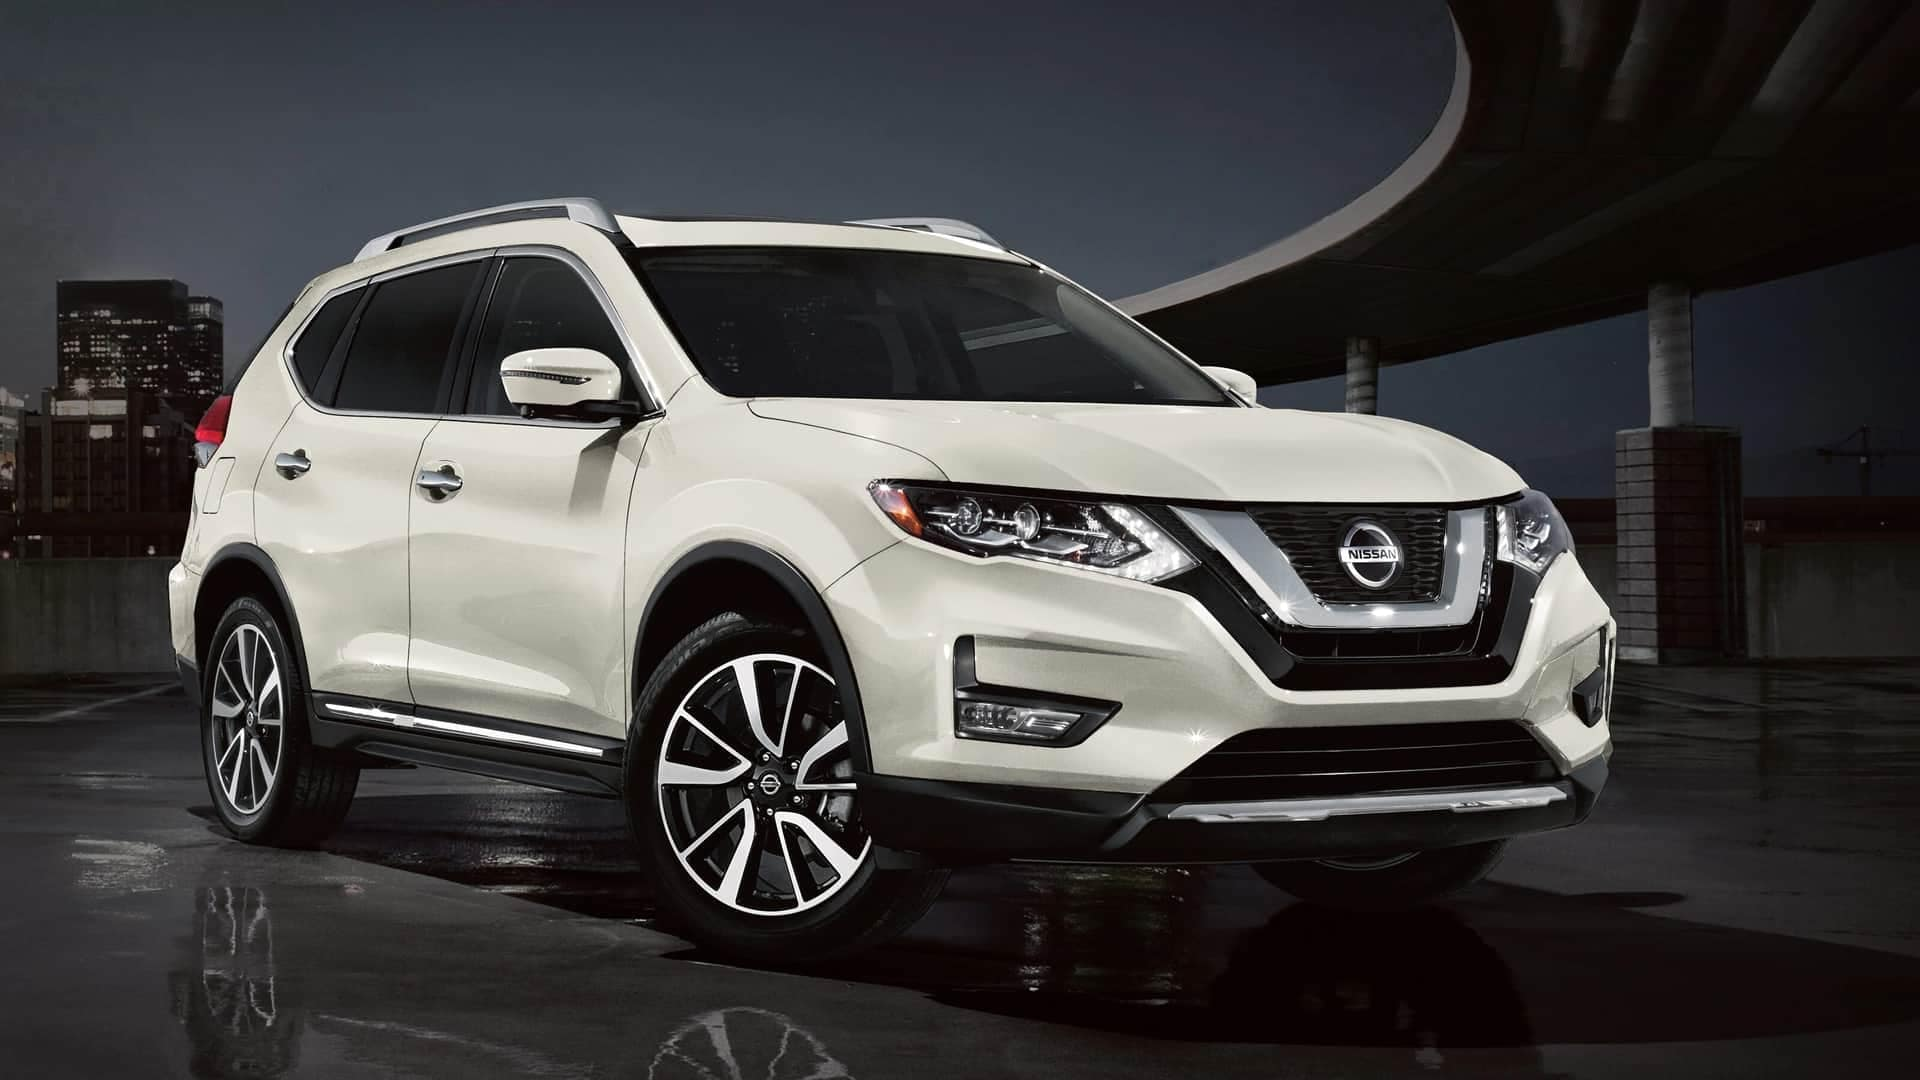 Ancira Nissan in San Antonio is committed to excellence